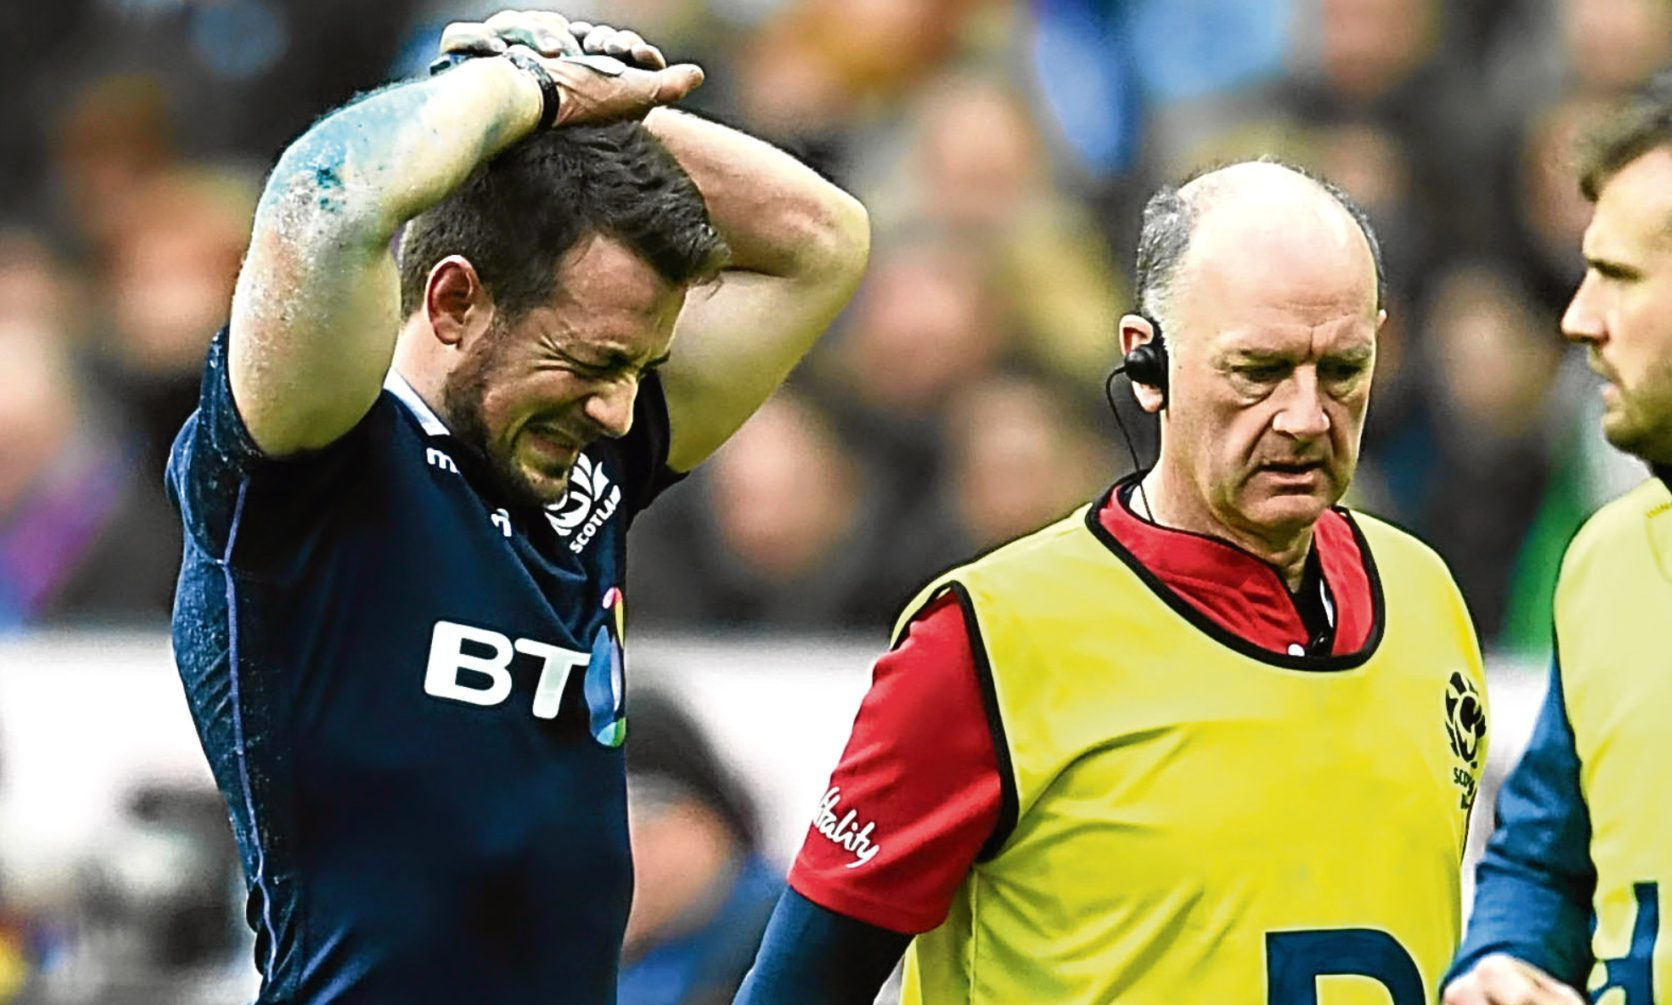 Scotland captain Greig Laidlaw comes off the park injured with team doctor James Robson (centre) during his side's RBS Six Nations game against France in Paris last month.